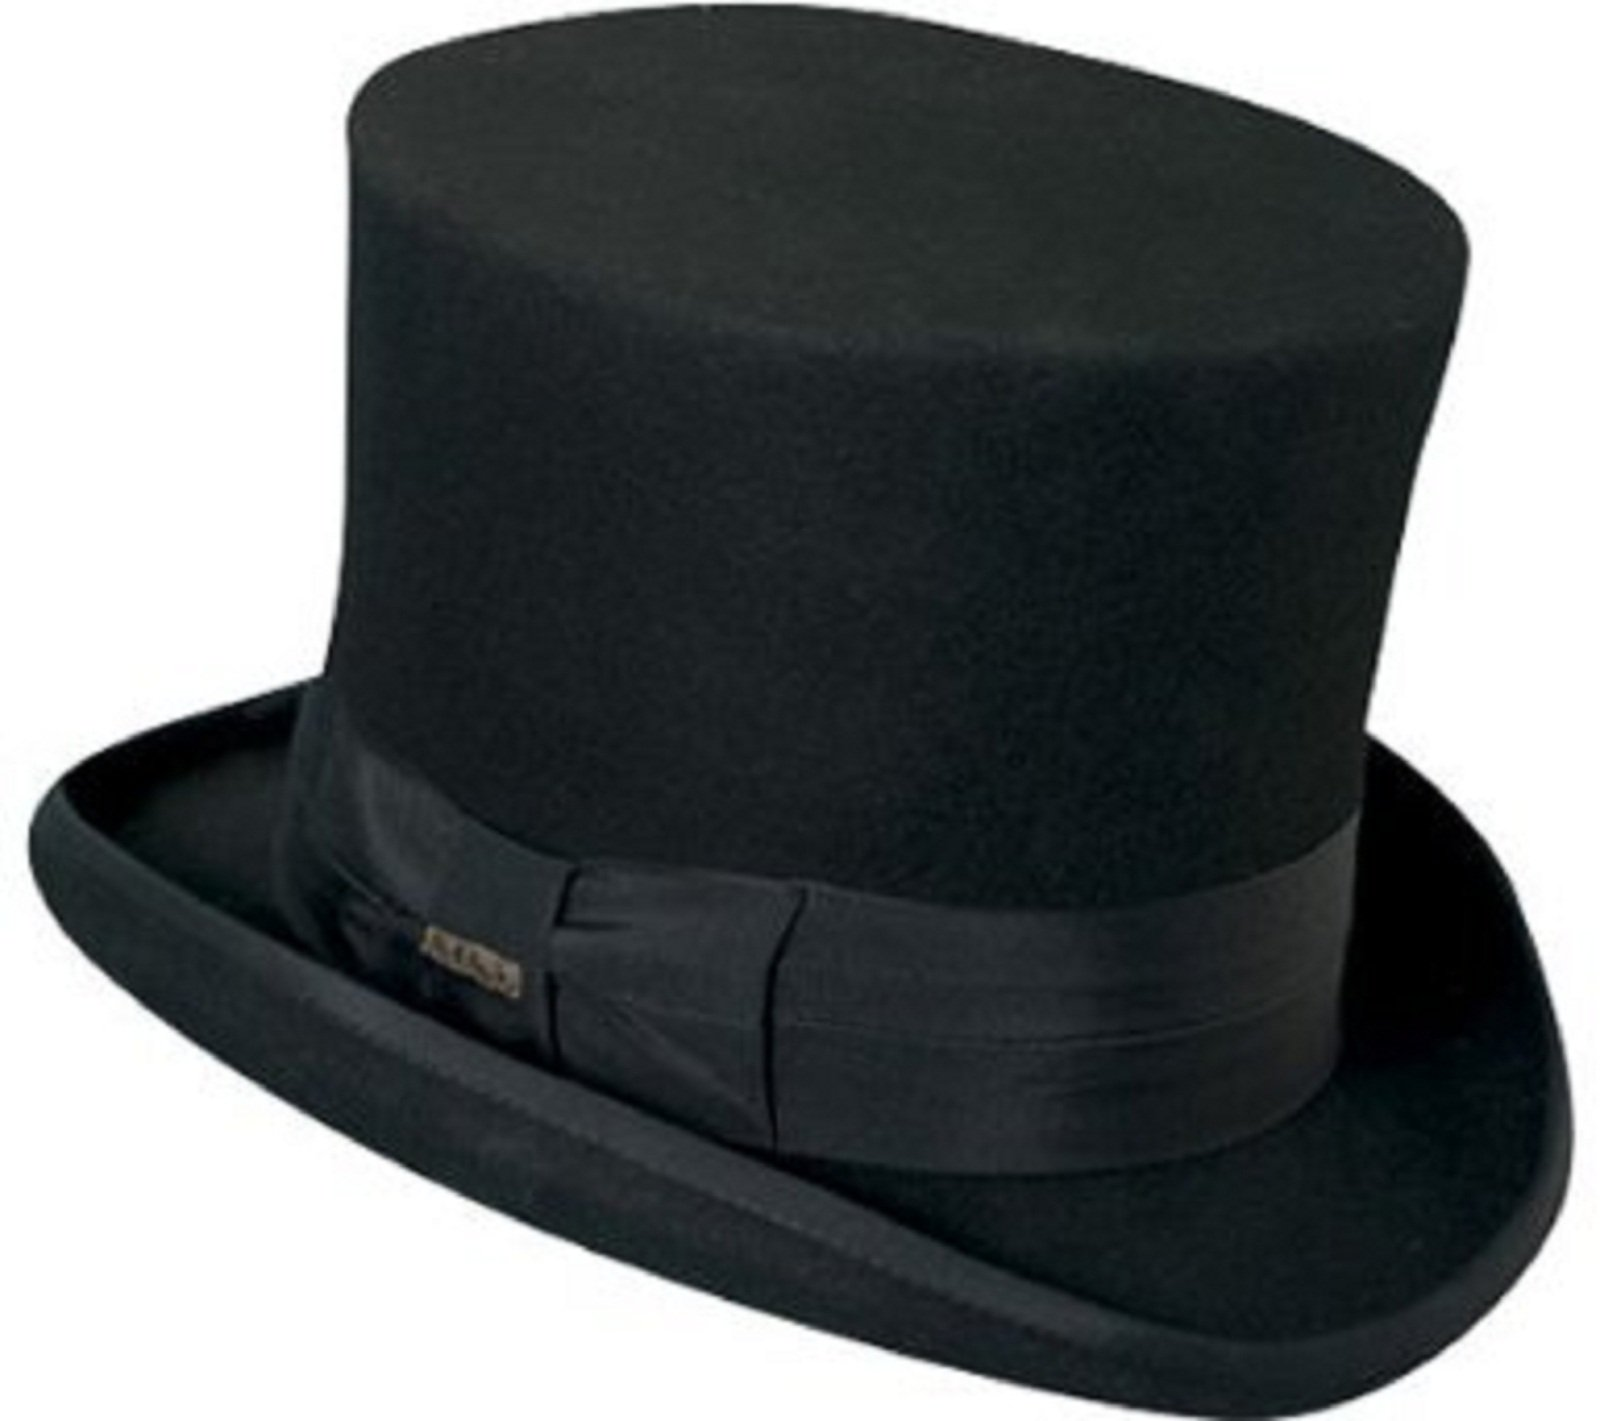 Victorian Classico Scala Mad Hatter 100% Wool Top Hat Black LARGE